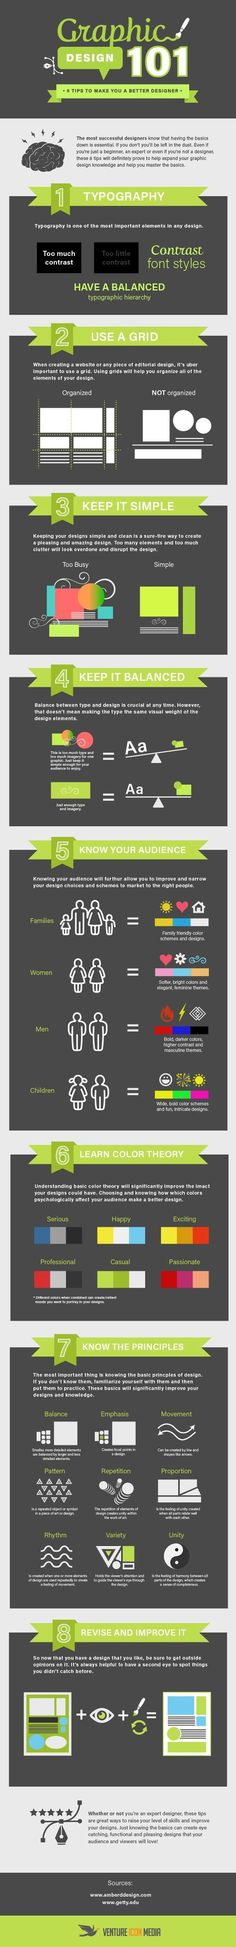 How Much Is The Human Body Worth Human Body Sports Food And - How much is the human body worth infographic